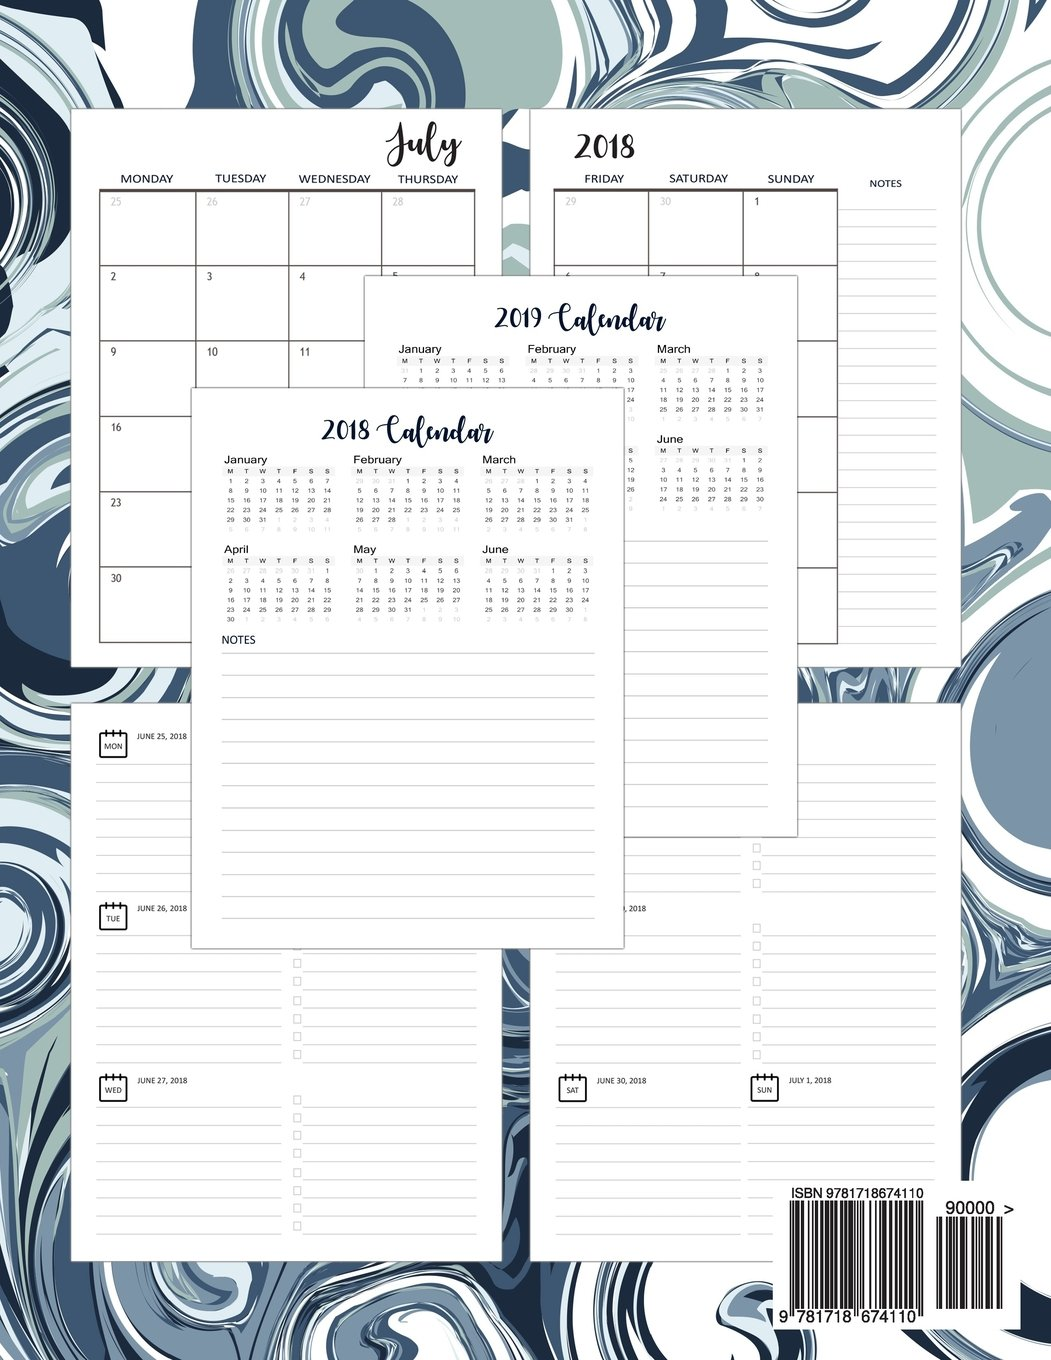 Planner July 2018-December 2019: Two Year - Daily Weekly Monthly Calendar  Planner |